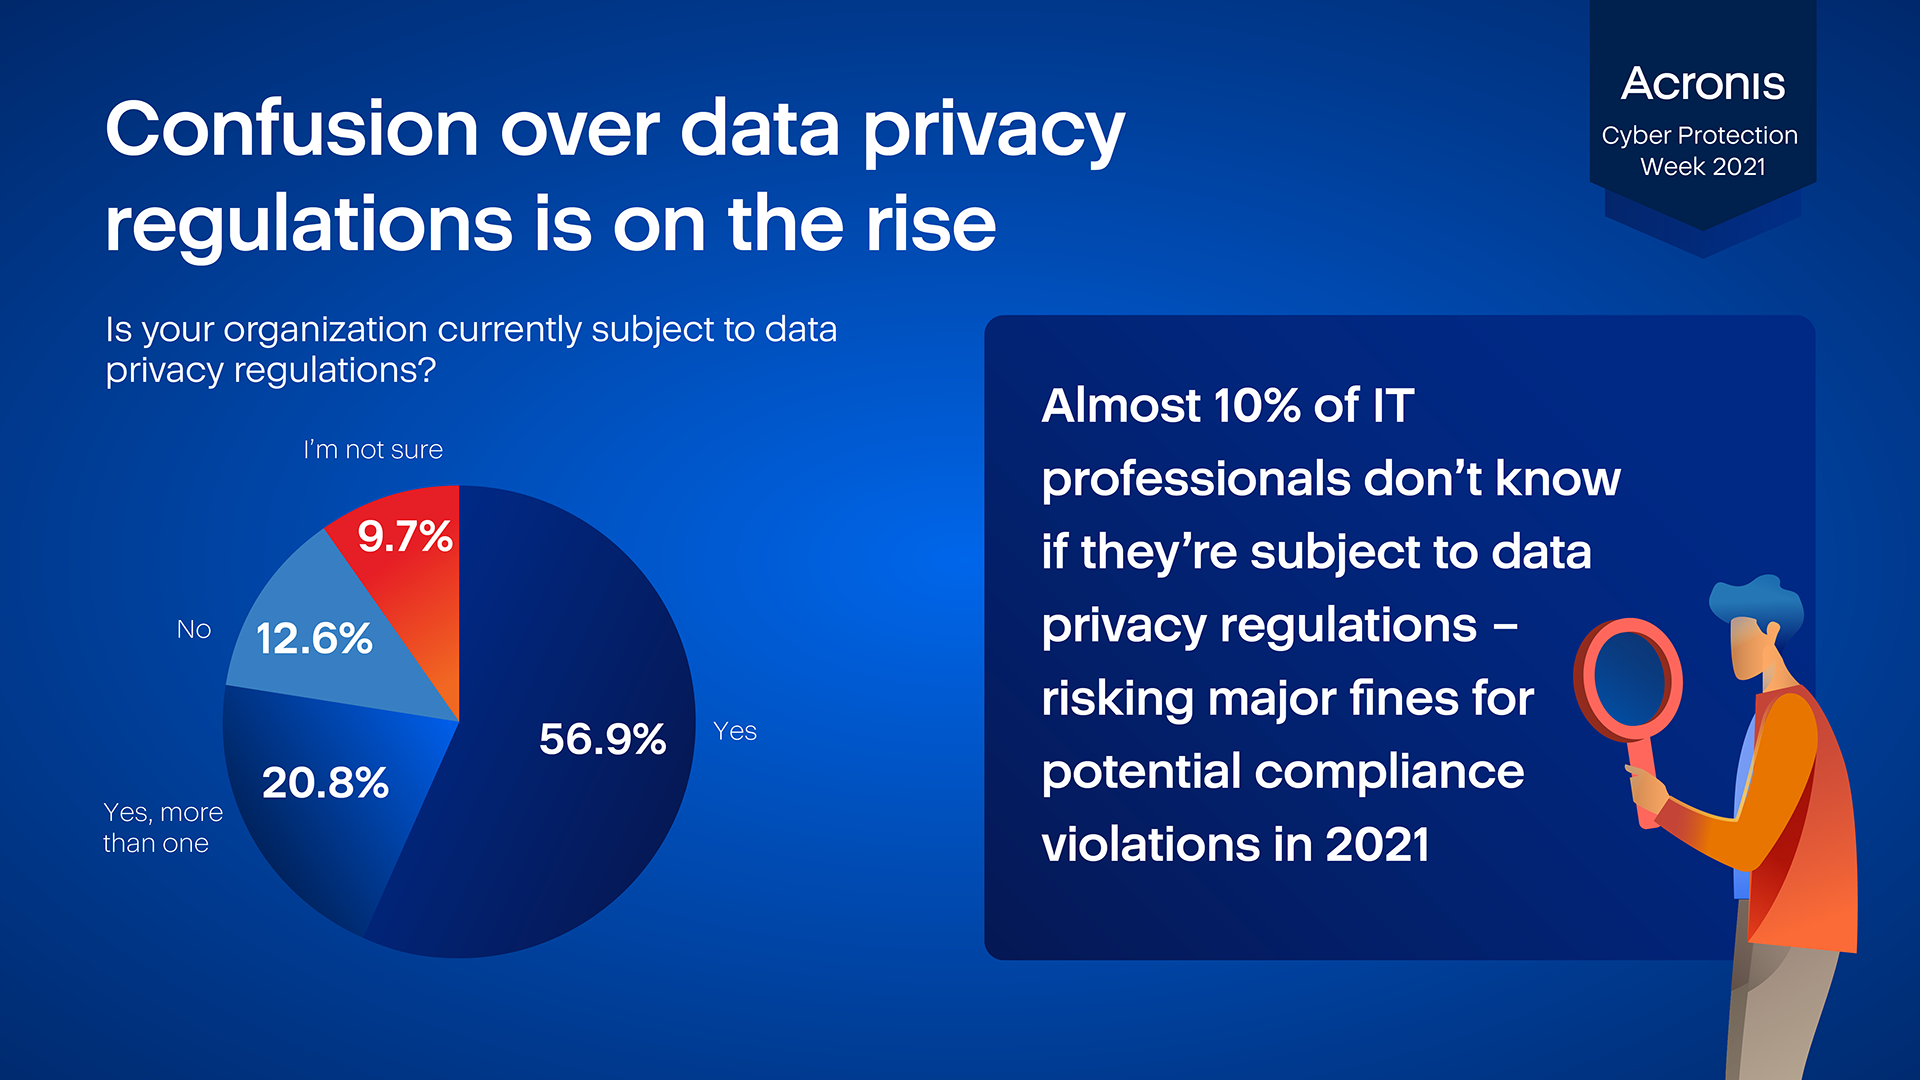 Confusion over data privacy regulations is on the rise